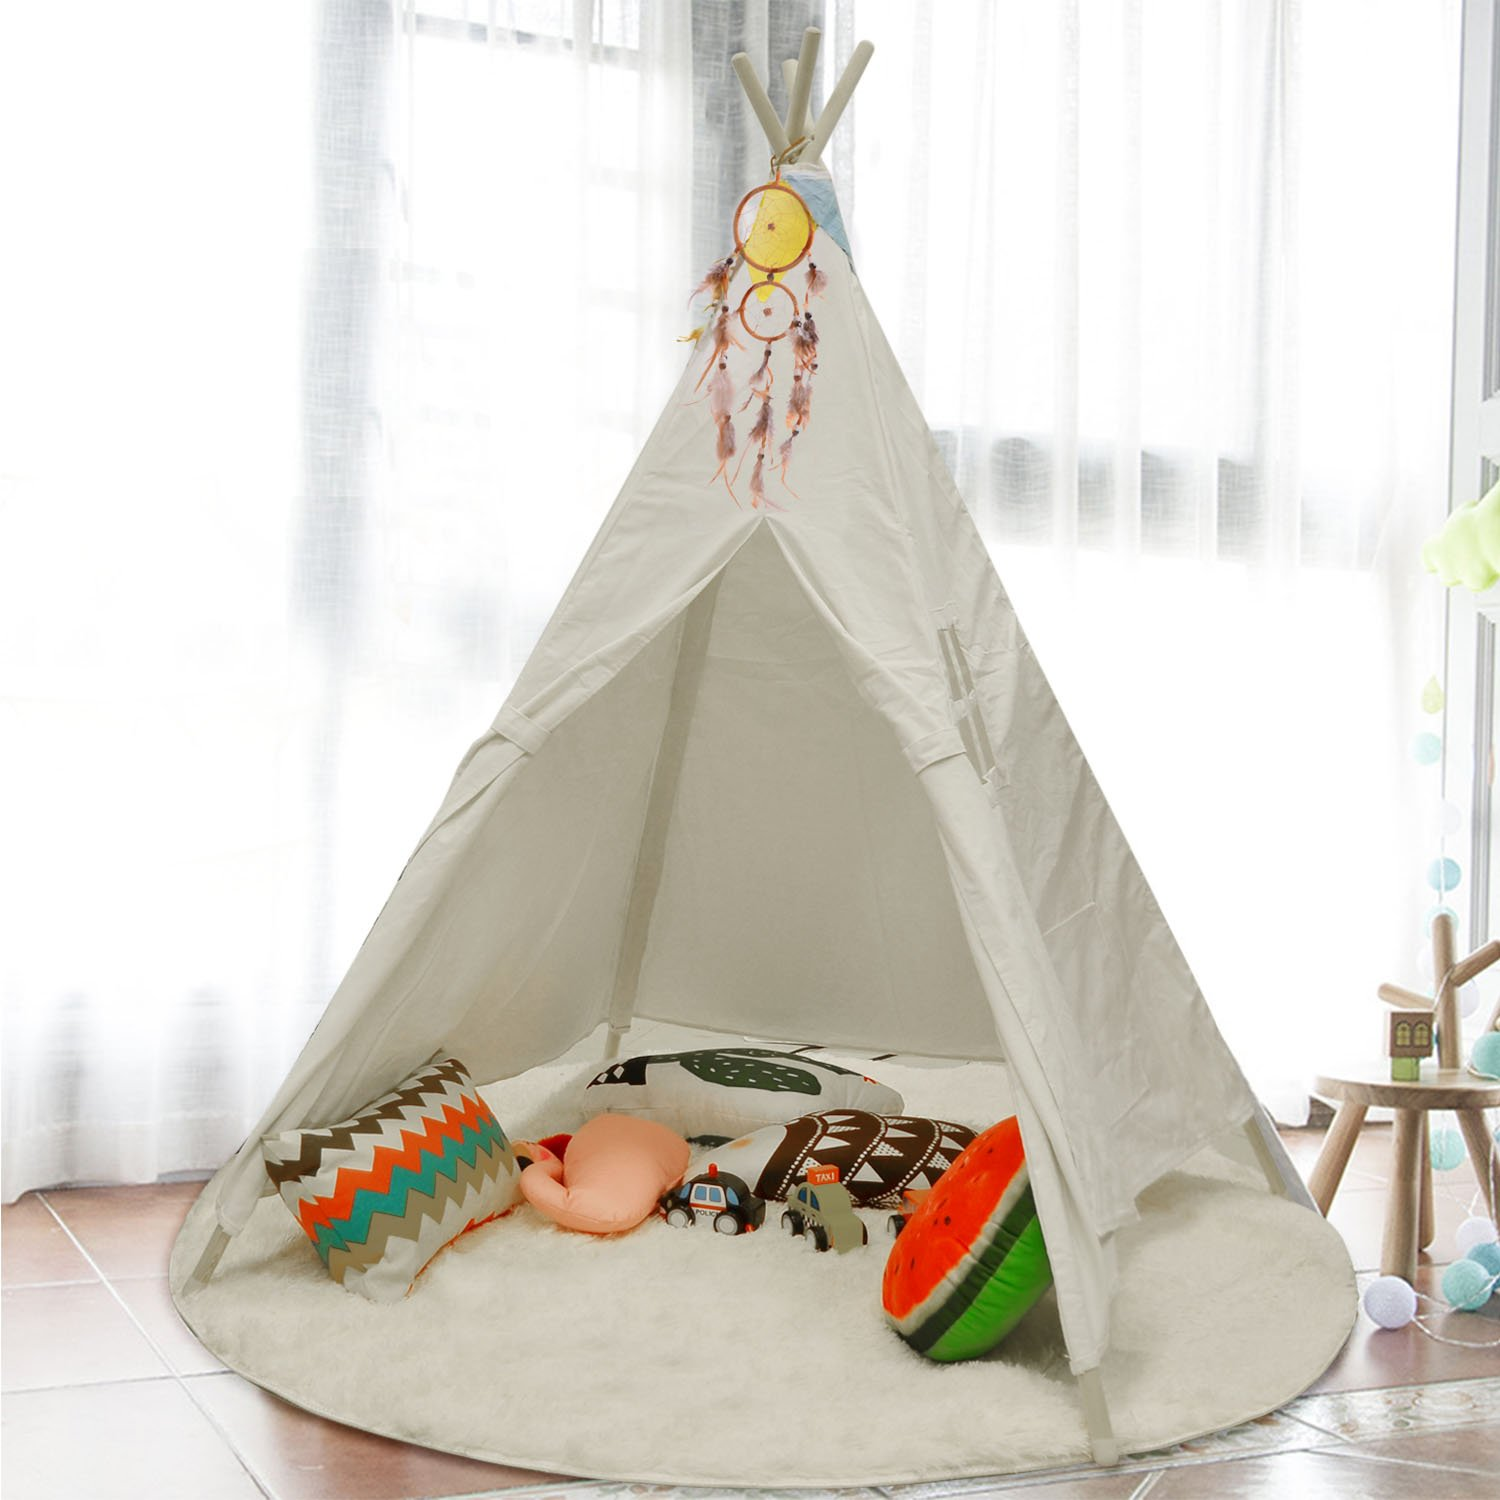 Amazoncom Mland Teepee Play Tent Playhouse For Birthday Gifts Party